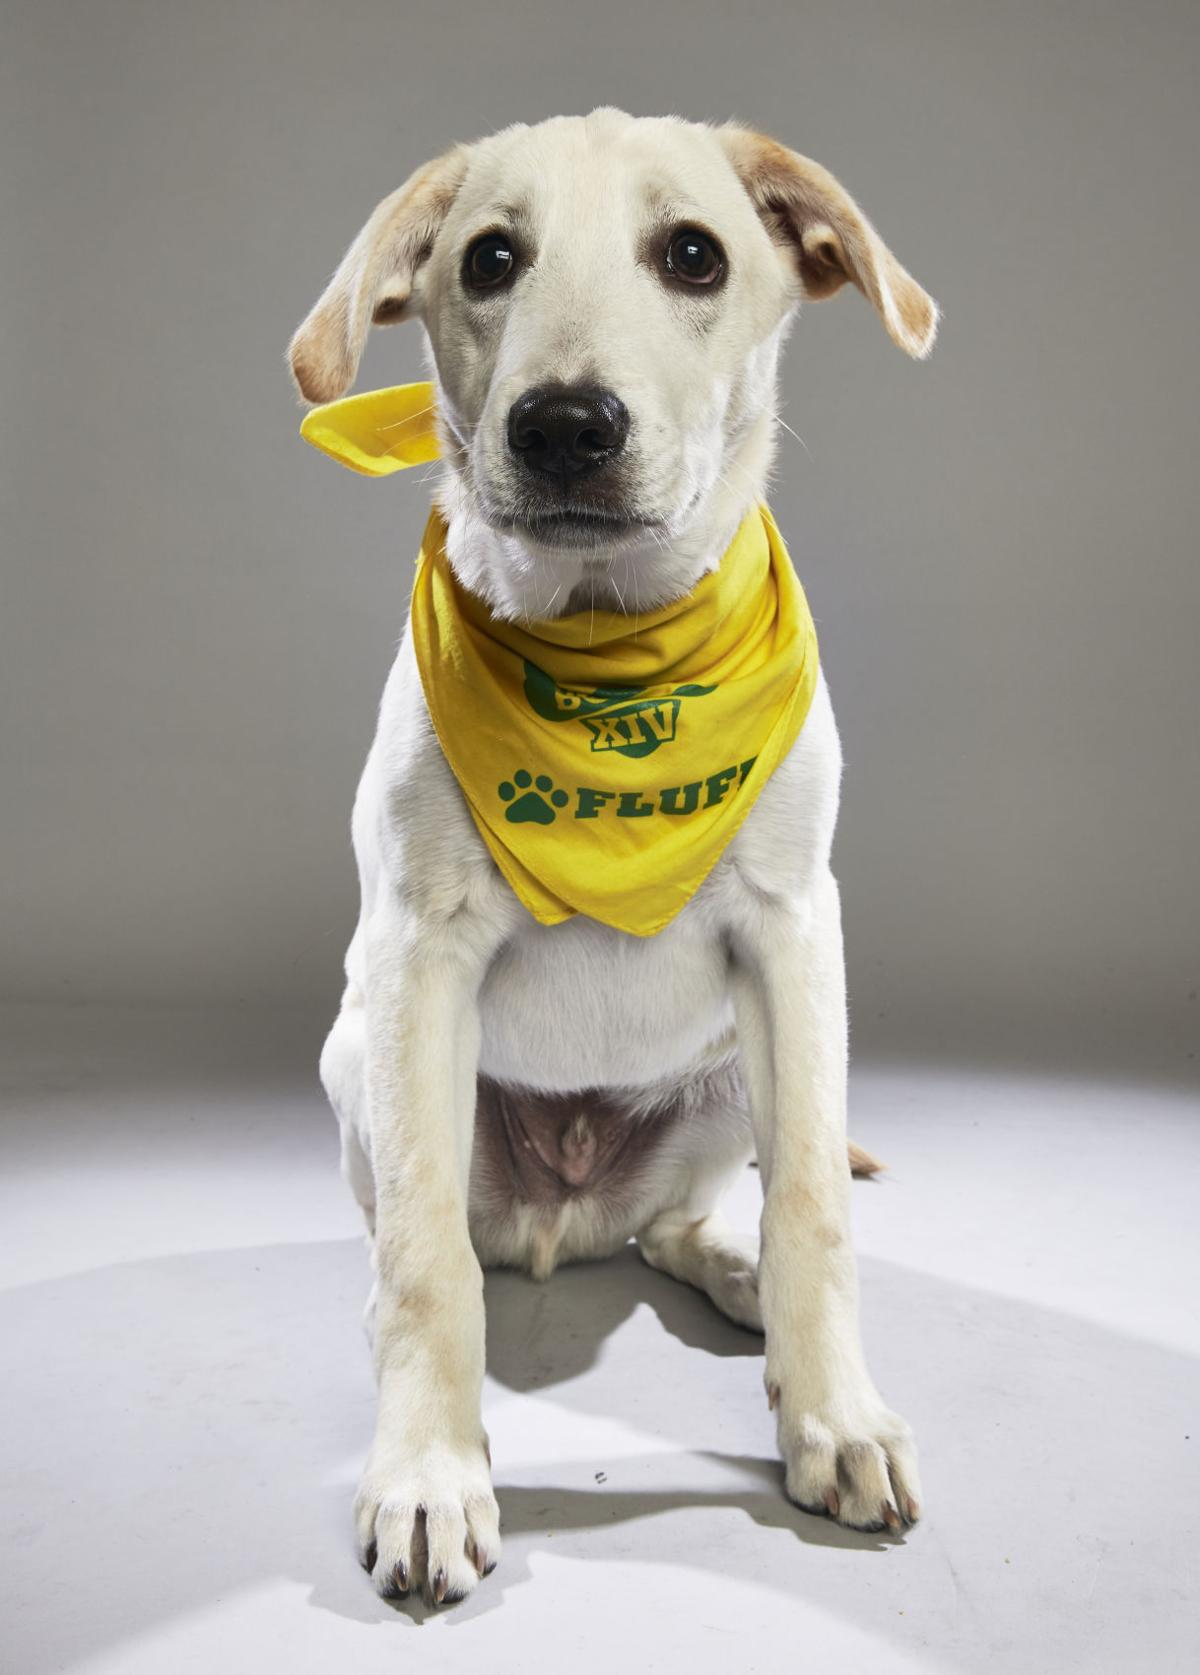 Ruff: Meet the starting lineup in this year's Puppy Bowl | Pets | journalstar.com